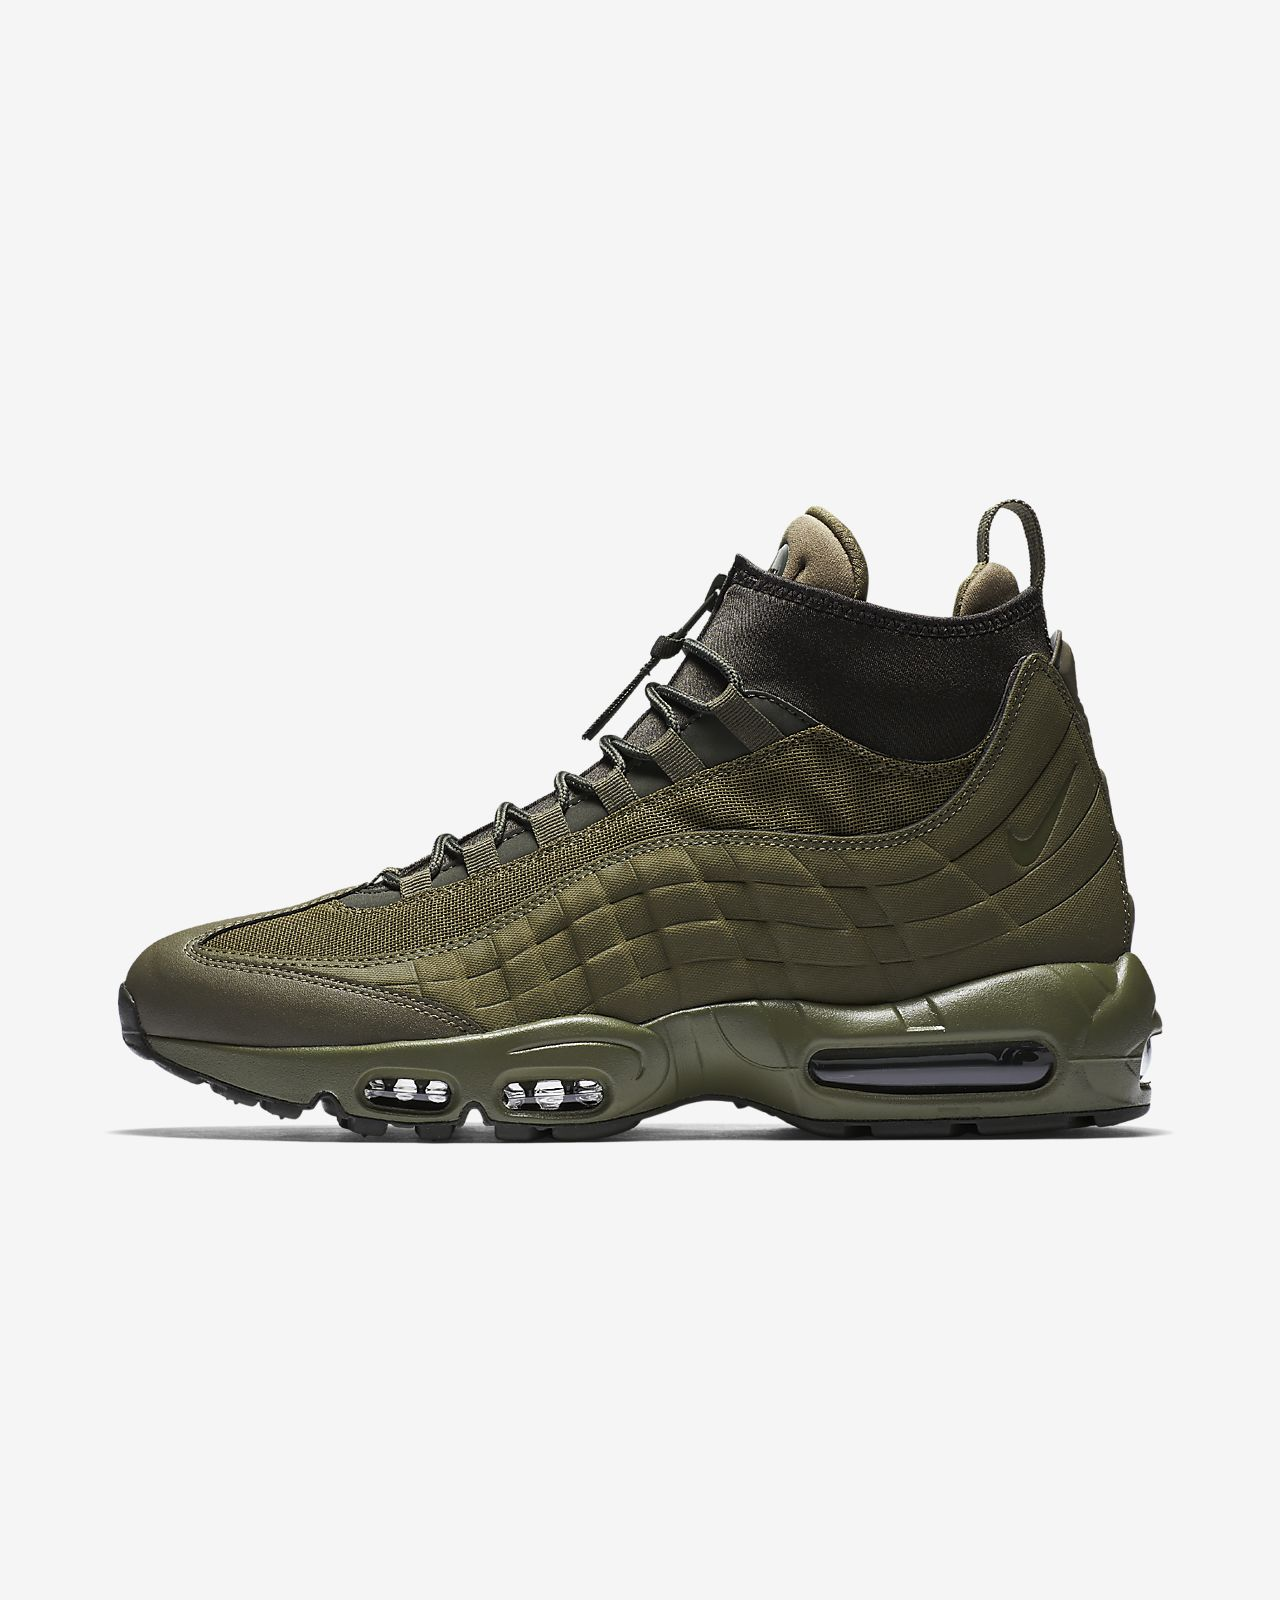 ... Botte Nike Air Max 95 SneakerBoot pour Homme